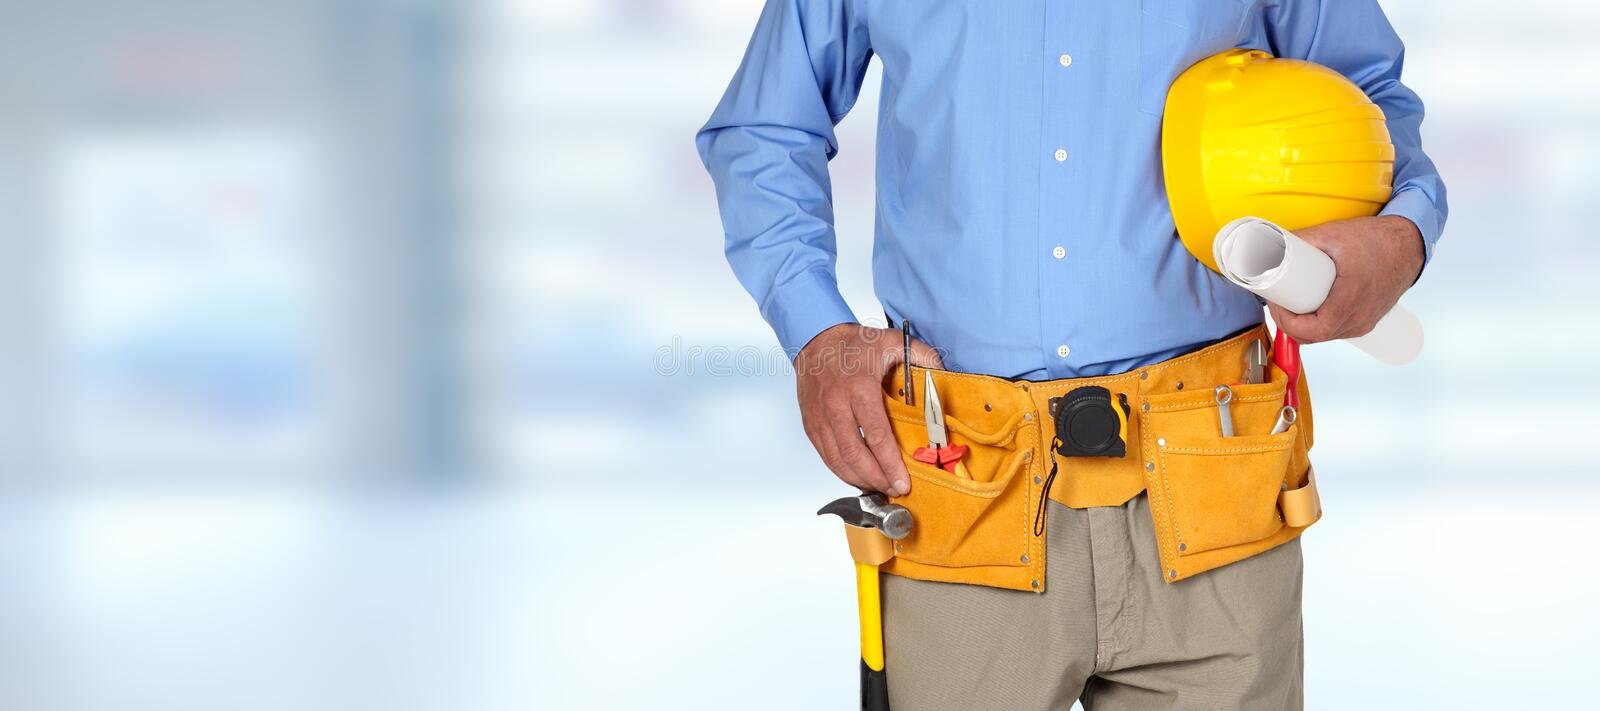 Construction worker with helmet and tool belt. royalty free stock photography